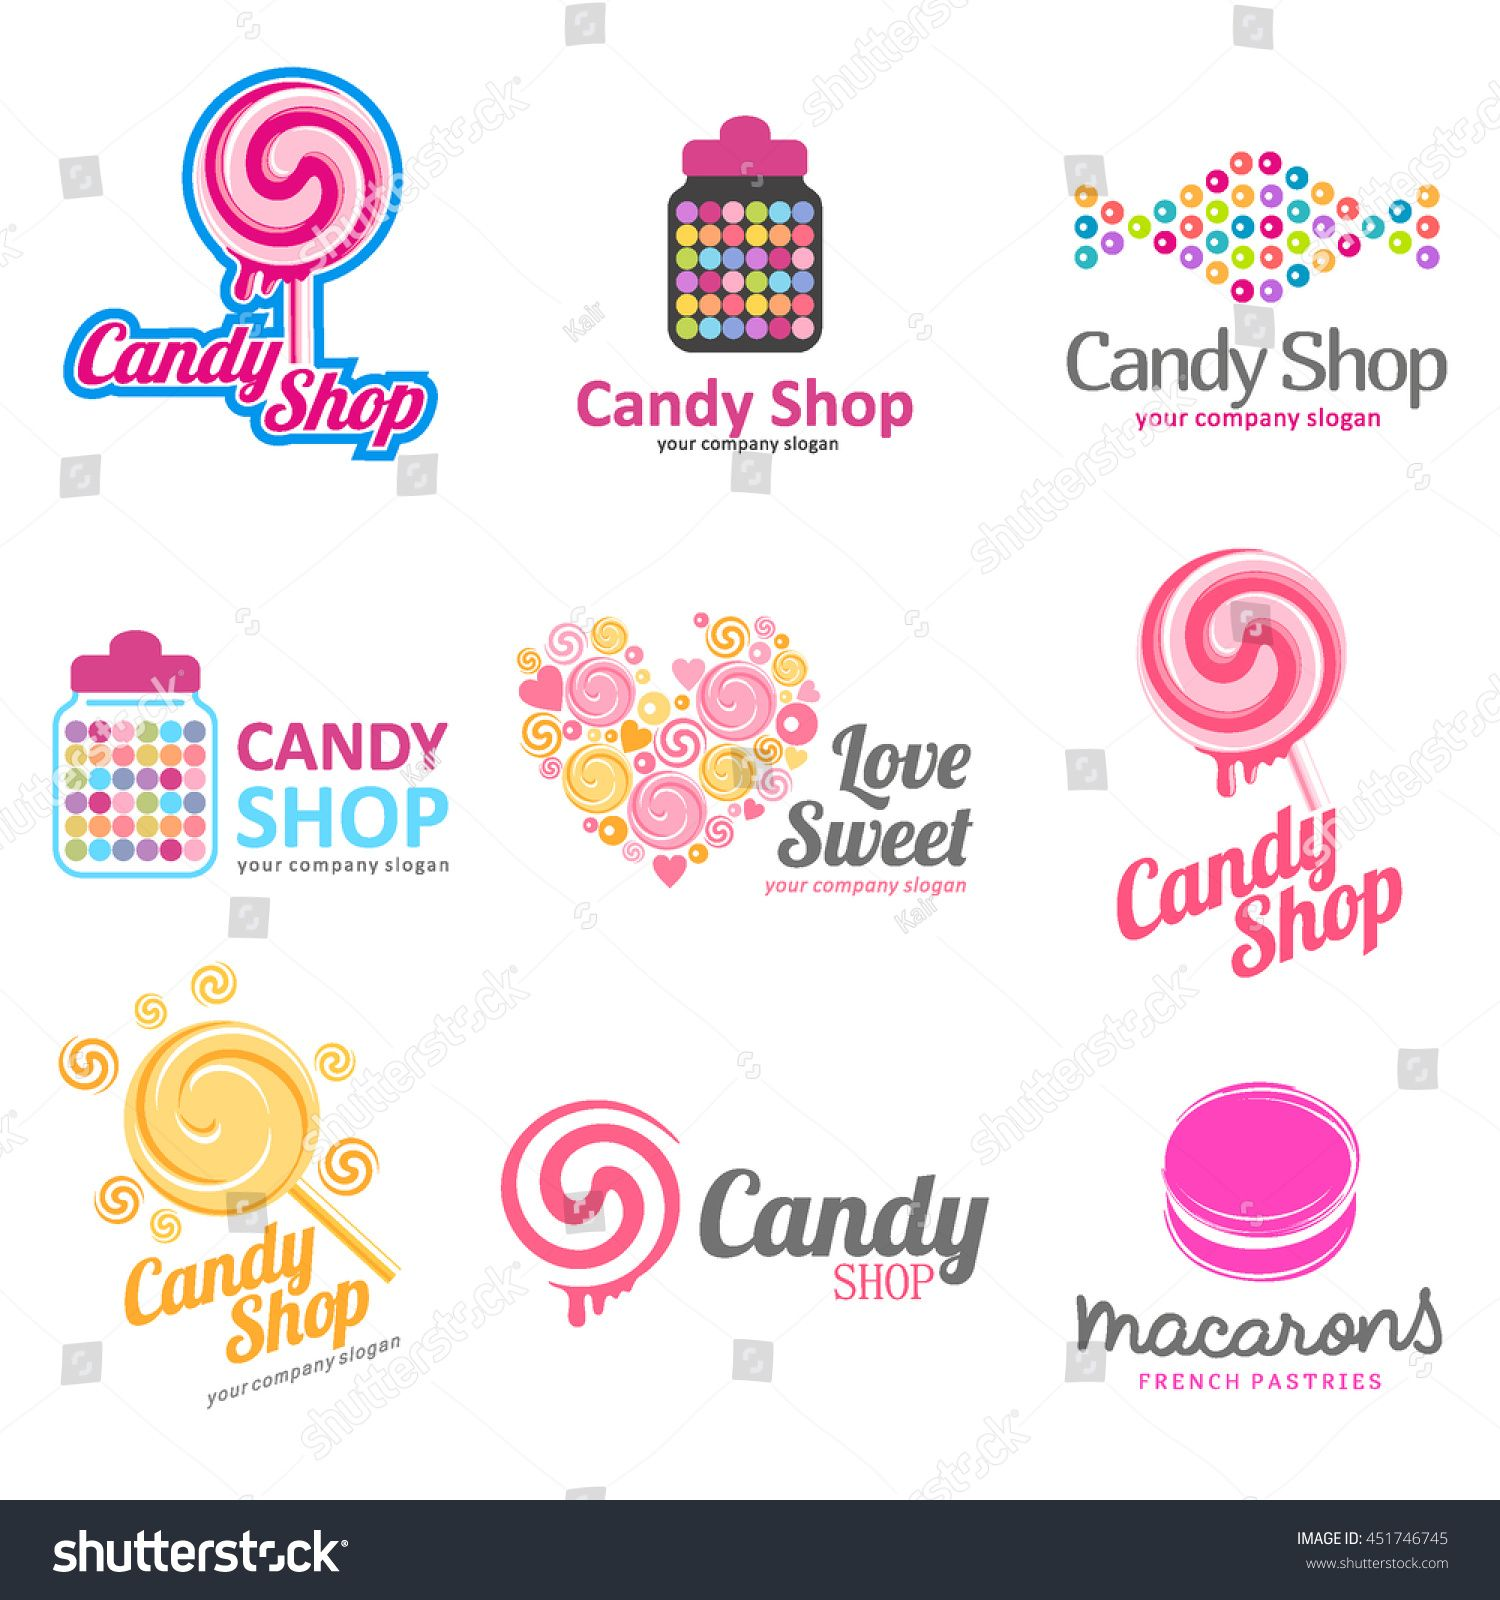 Libre Boutique Vector Set Of Logos For Sweets Candy Shop Boutique Store